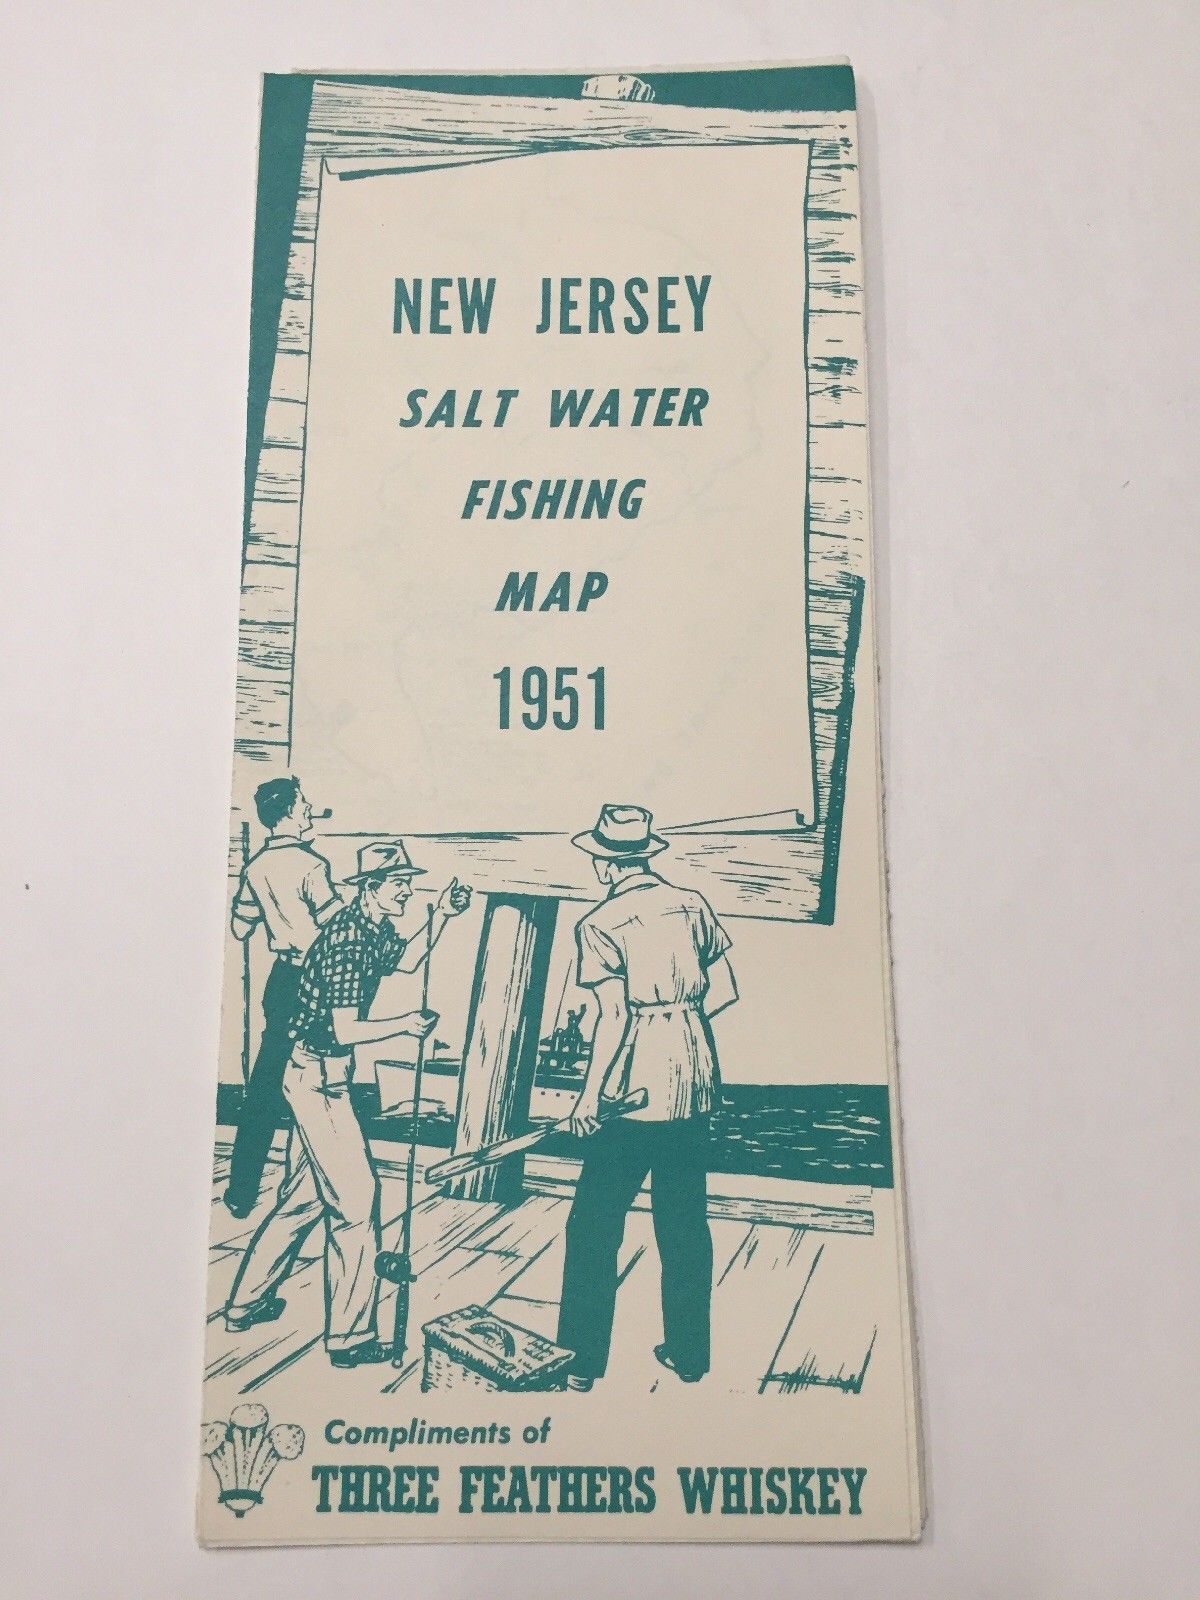 New jersey salt water fishing map 1951 three feathers for Saltwater fishing license nj